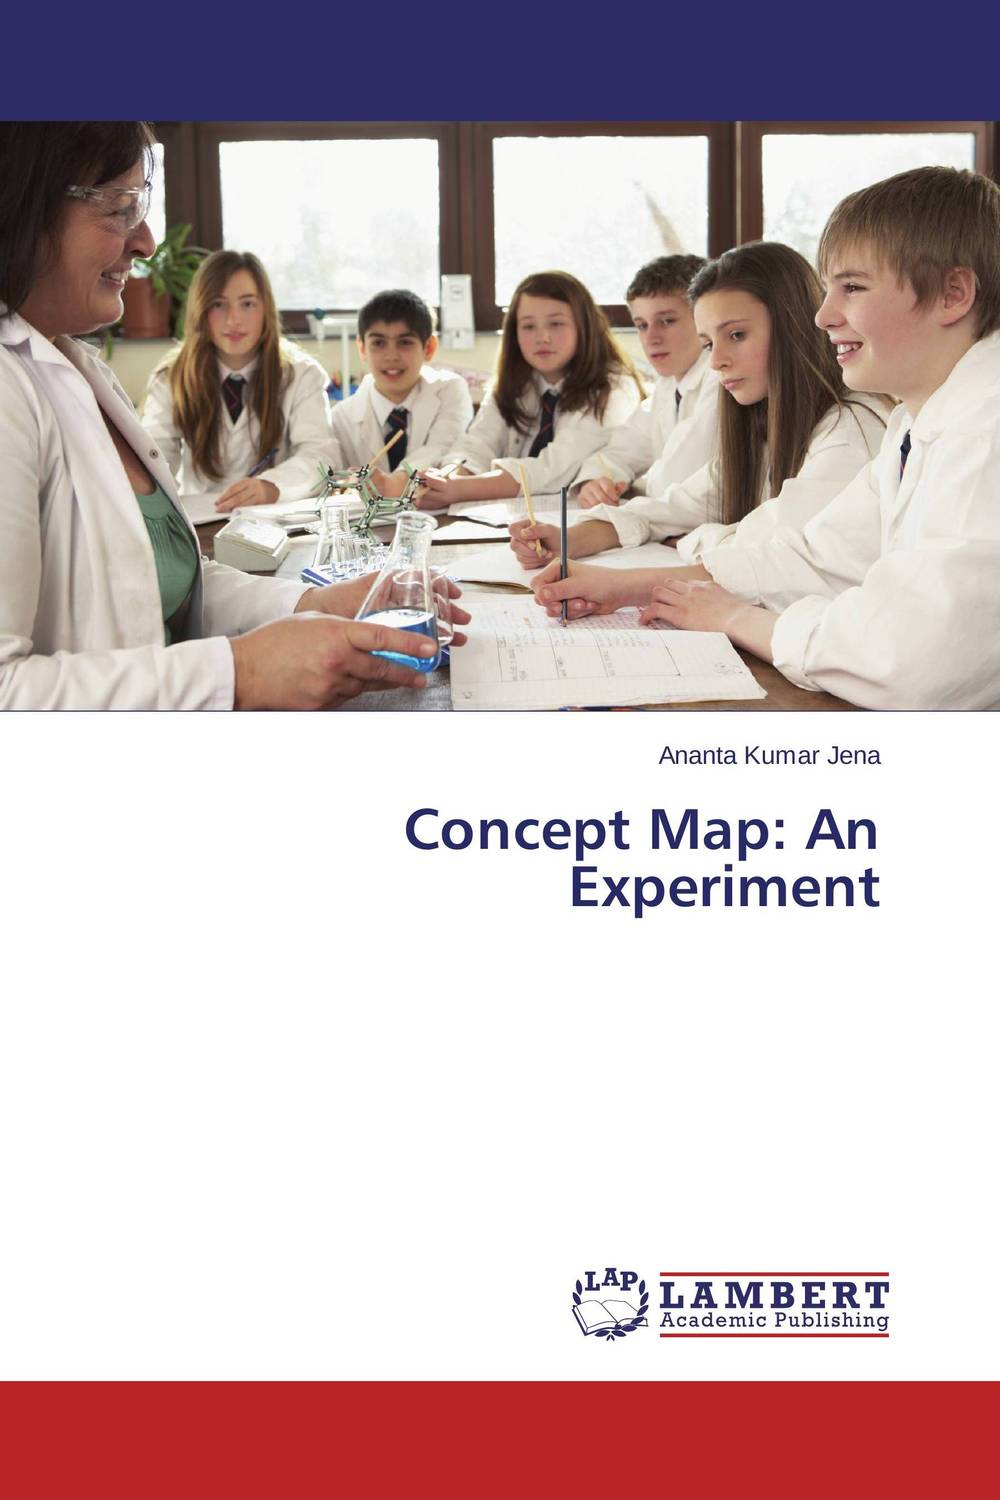 Concept Map: An Experiment